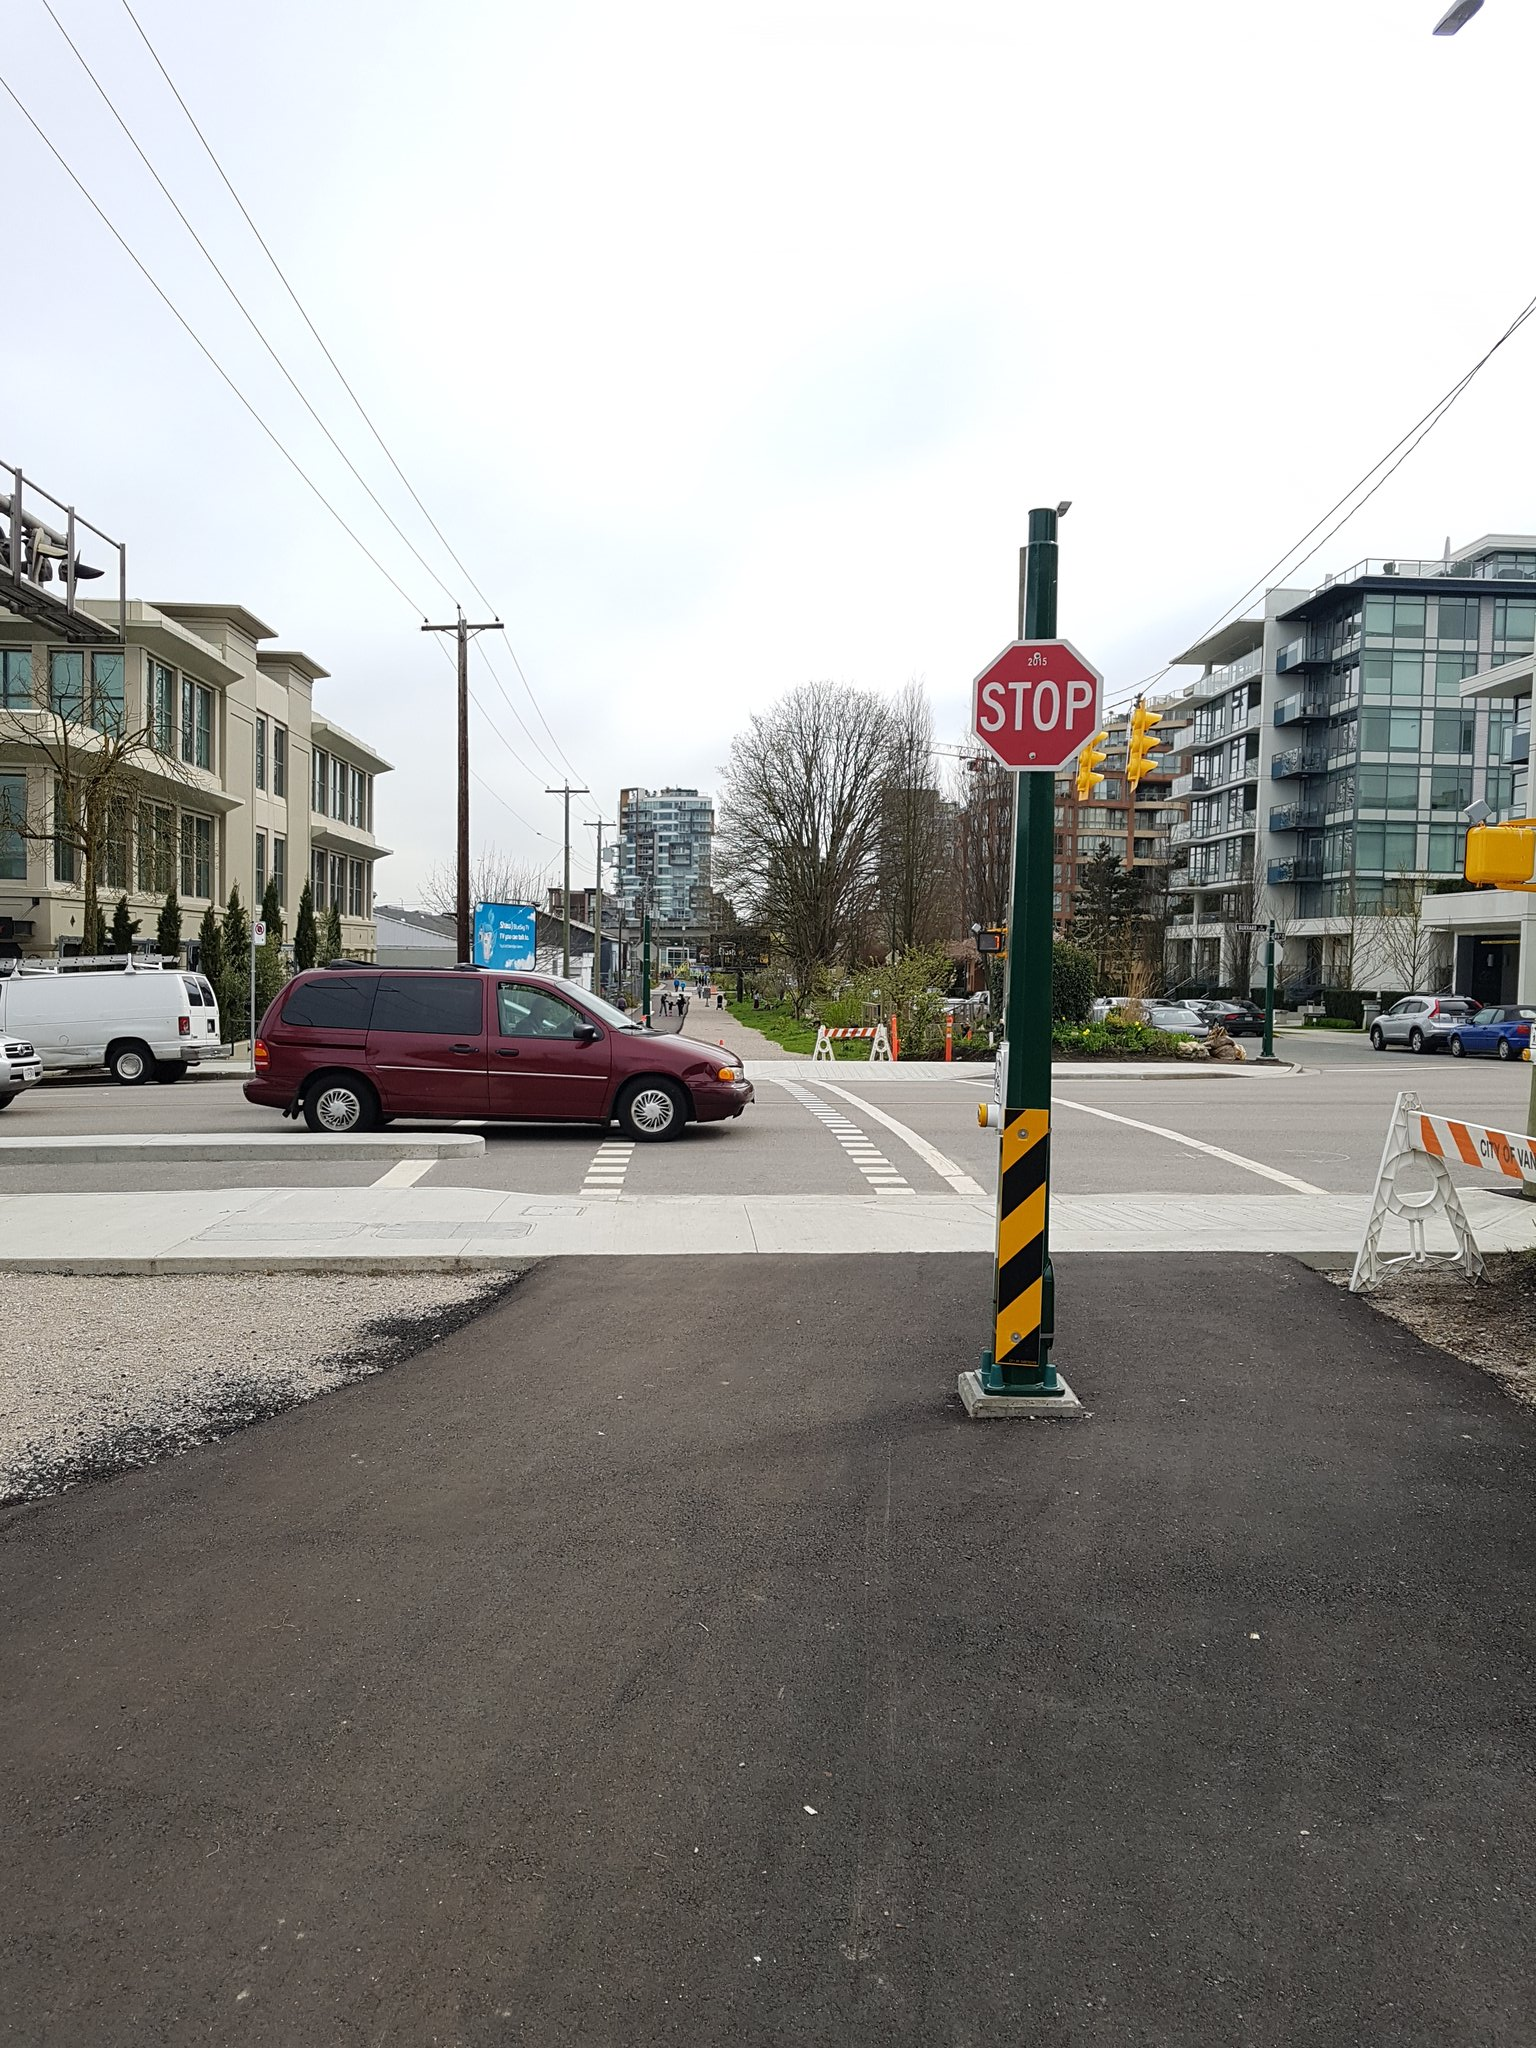 And some completely new crossings of major roads (this is Burrard). Some drivers clearly are still adjusting #yyjbike https://t.co/Knc9LlsaMF